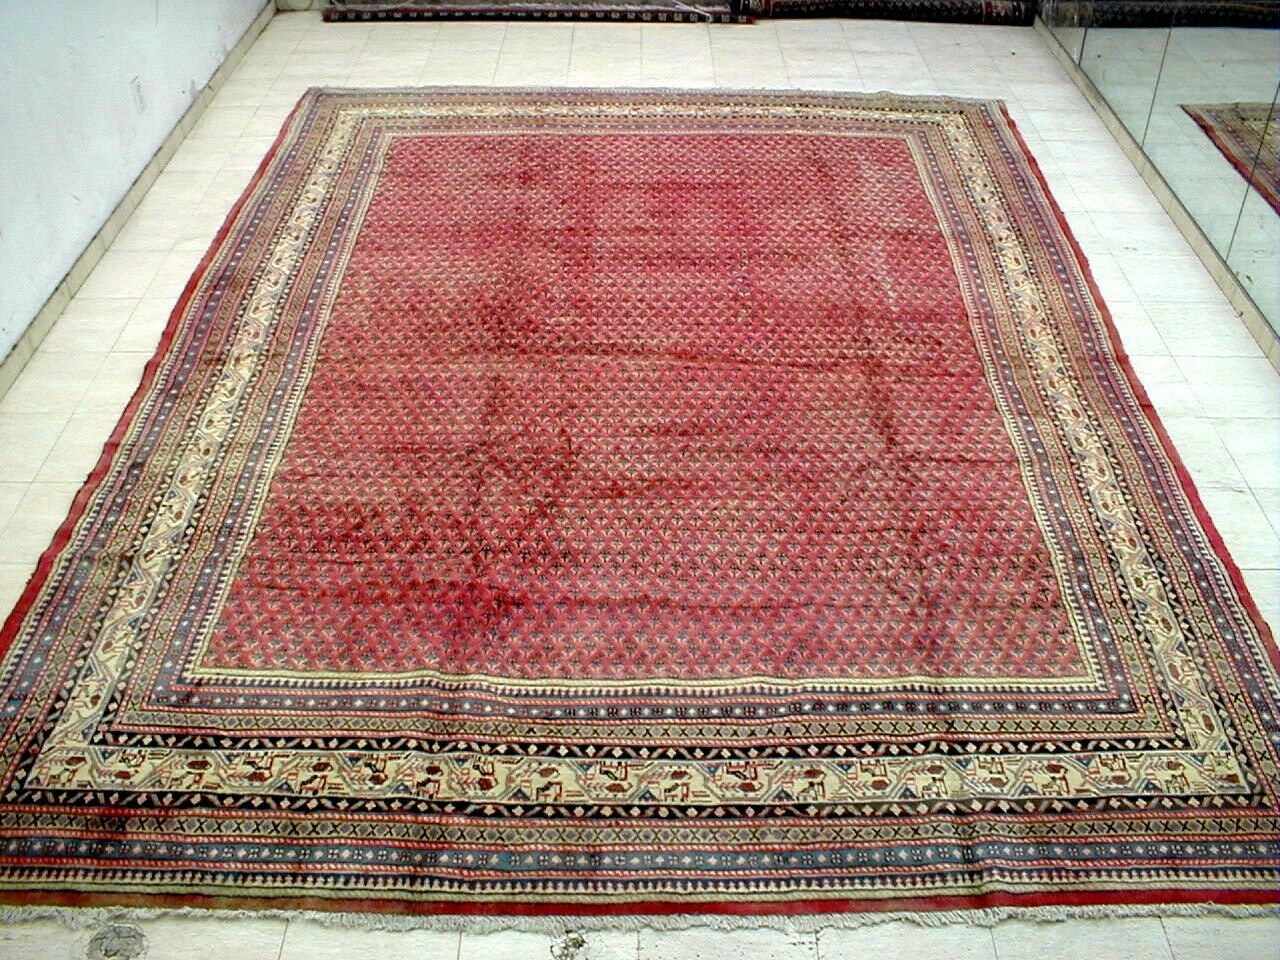 9X13 1940's MAGNIFICENT HAND KNOTTED 70+YRS ANTQ KORK WOOL SAROUK PERSIAN RUG